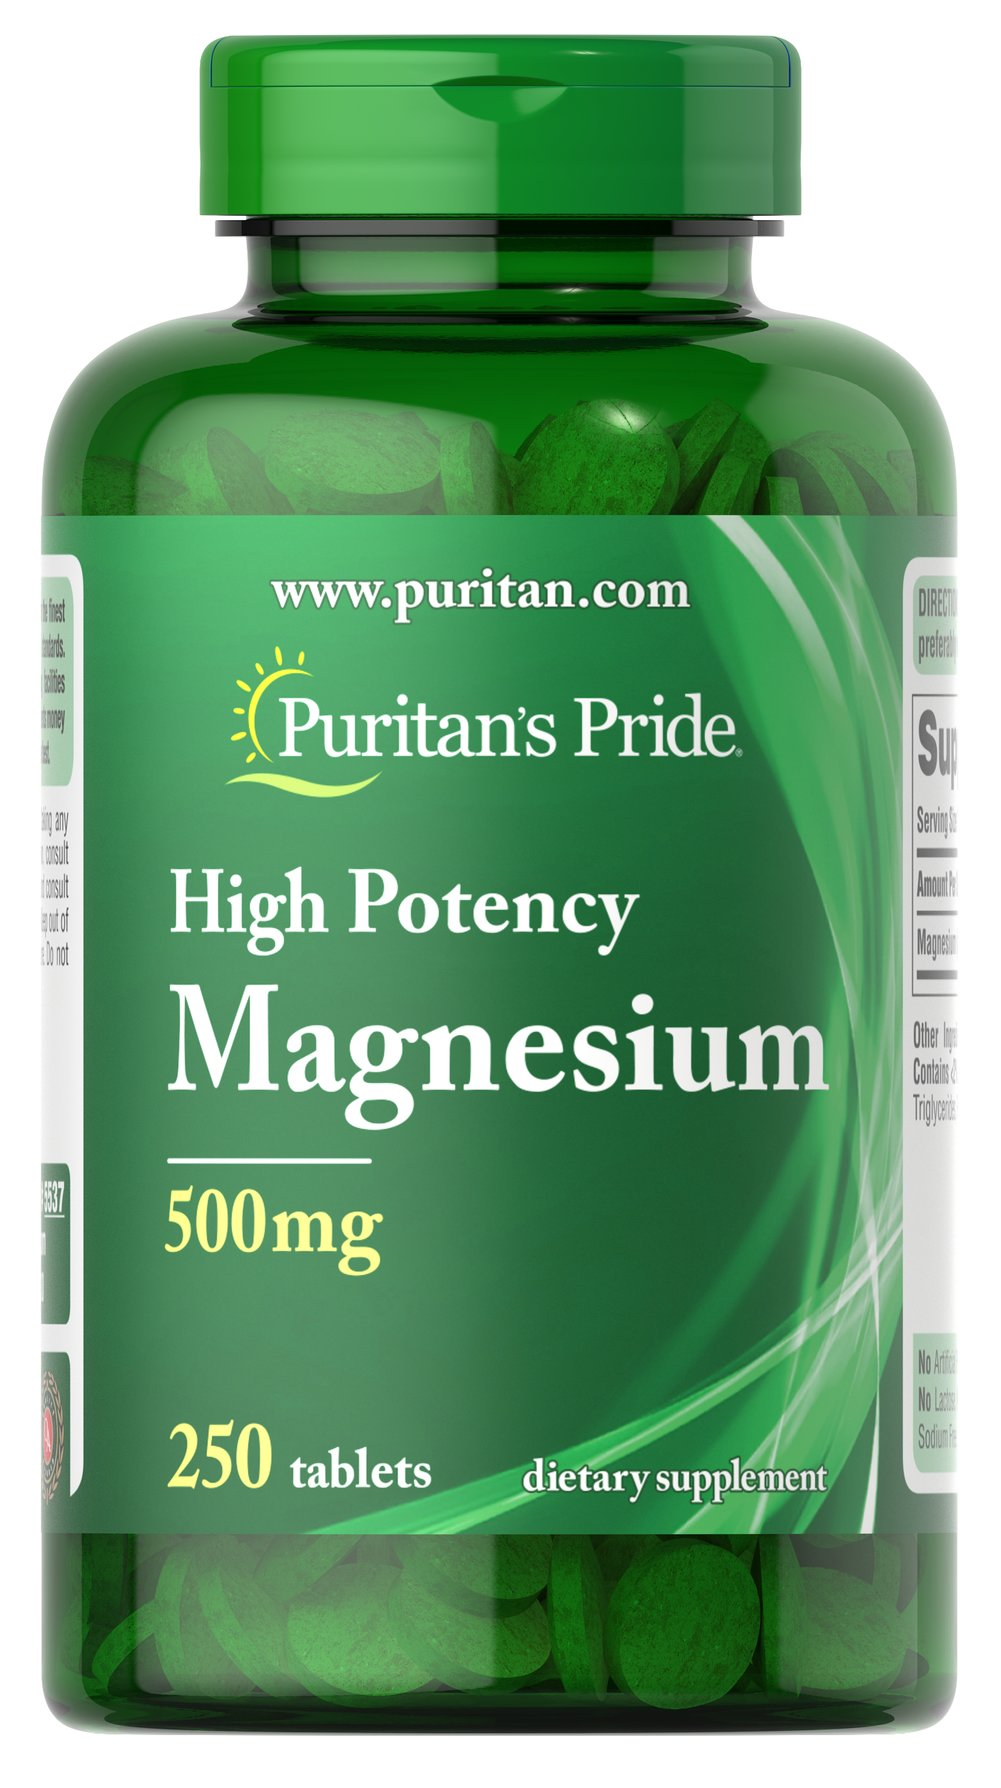 Magnesium 500 mg <p>Magnesium offers another option, besides Calcium, for supporting bone health.** Magnesium plays an essential role in maintaining bone mineralization, and is also involved in muscle contractions and nerve impulses.** Adults can take one caplet daily with a meal.</p> 250 Tablets 500 mg $23.23